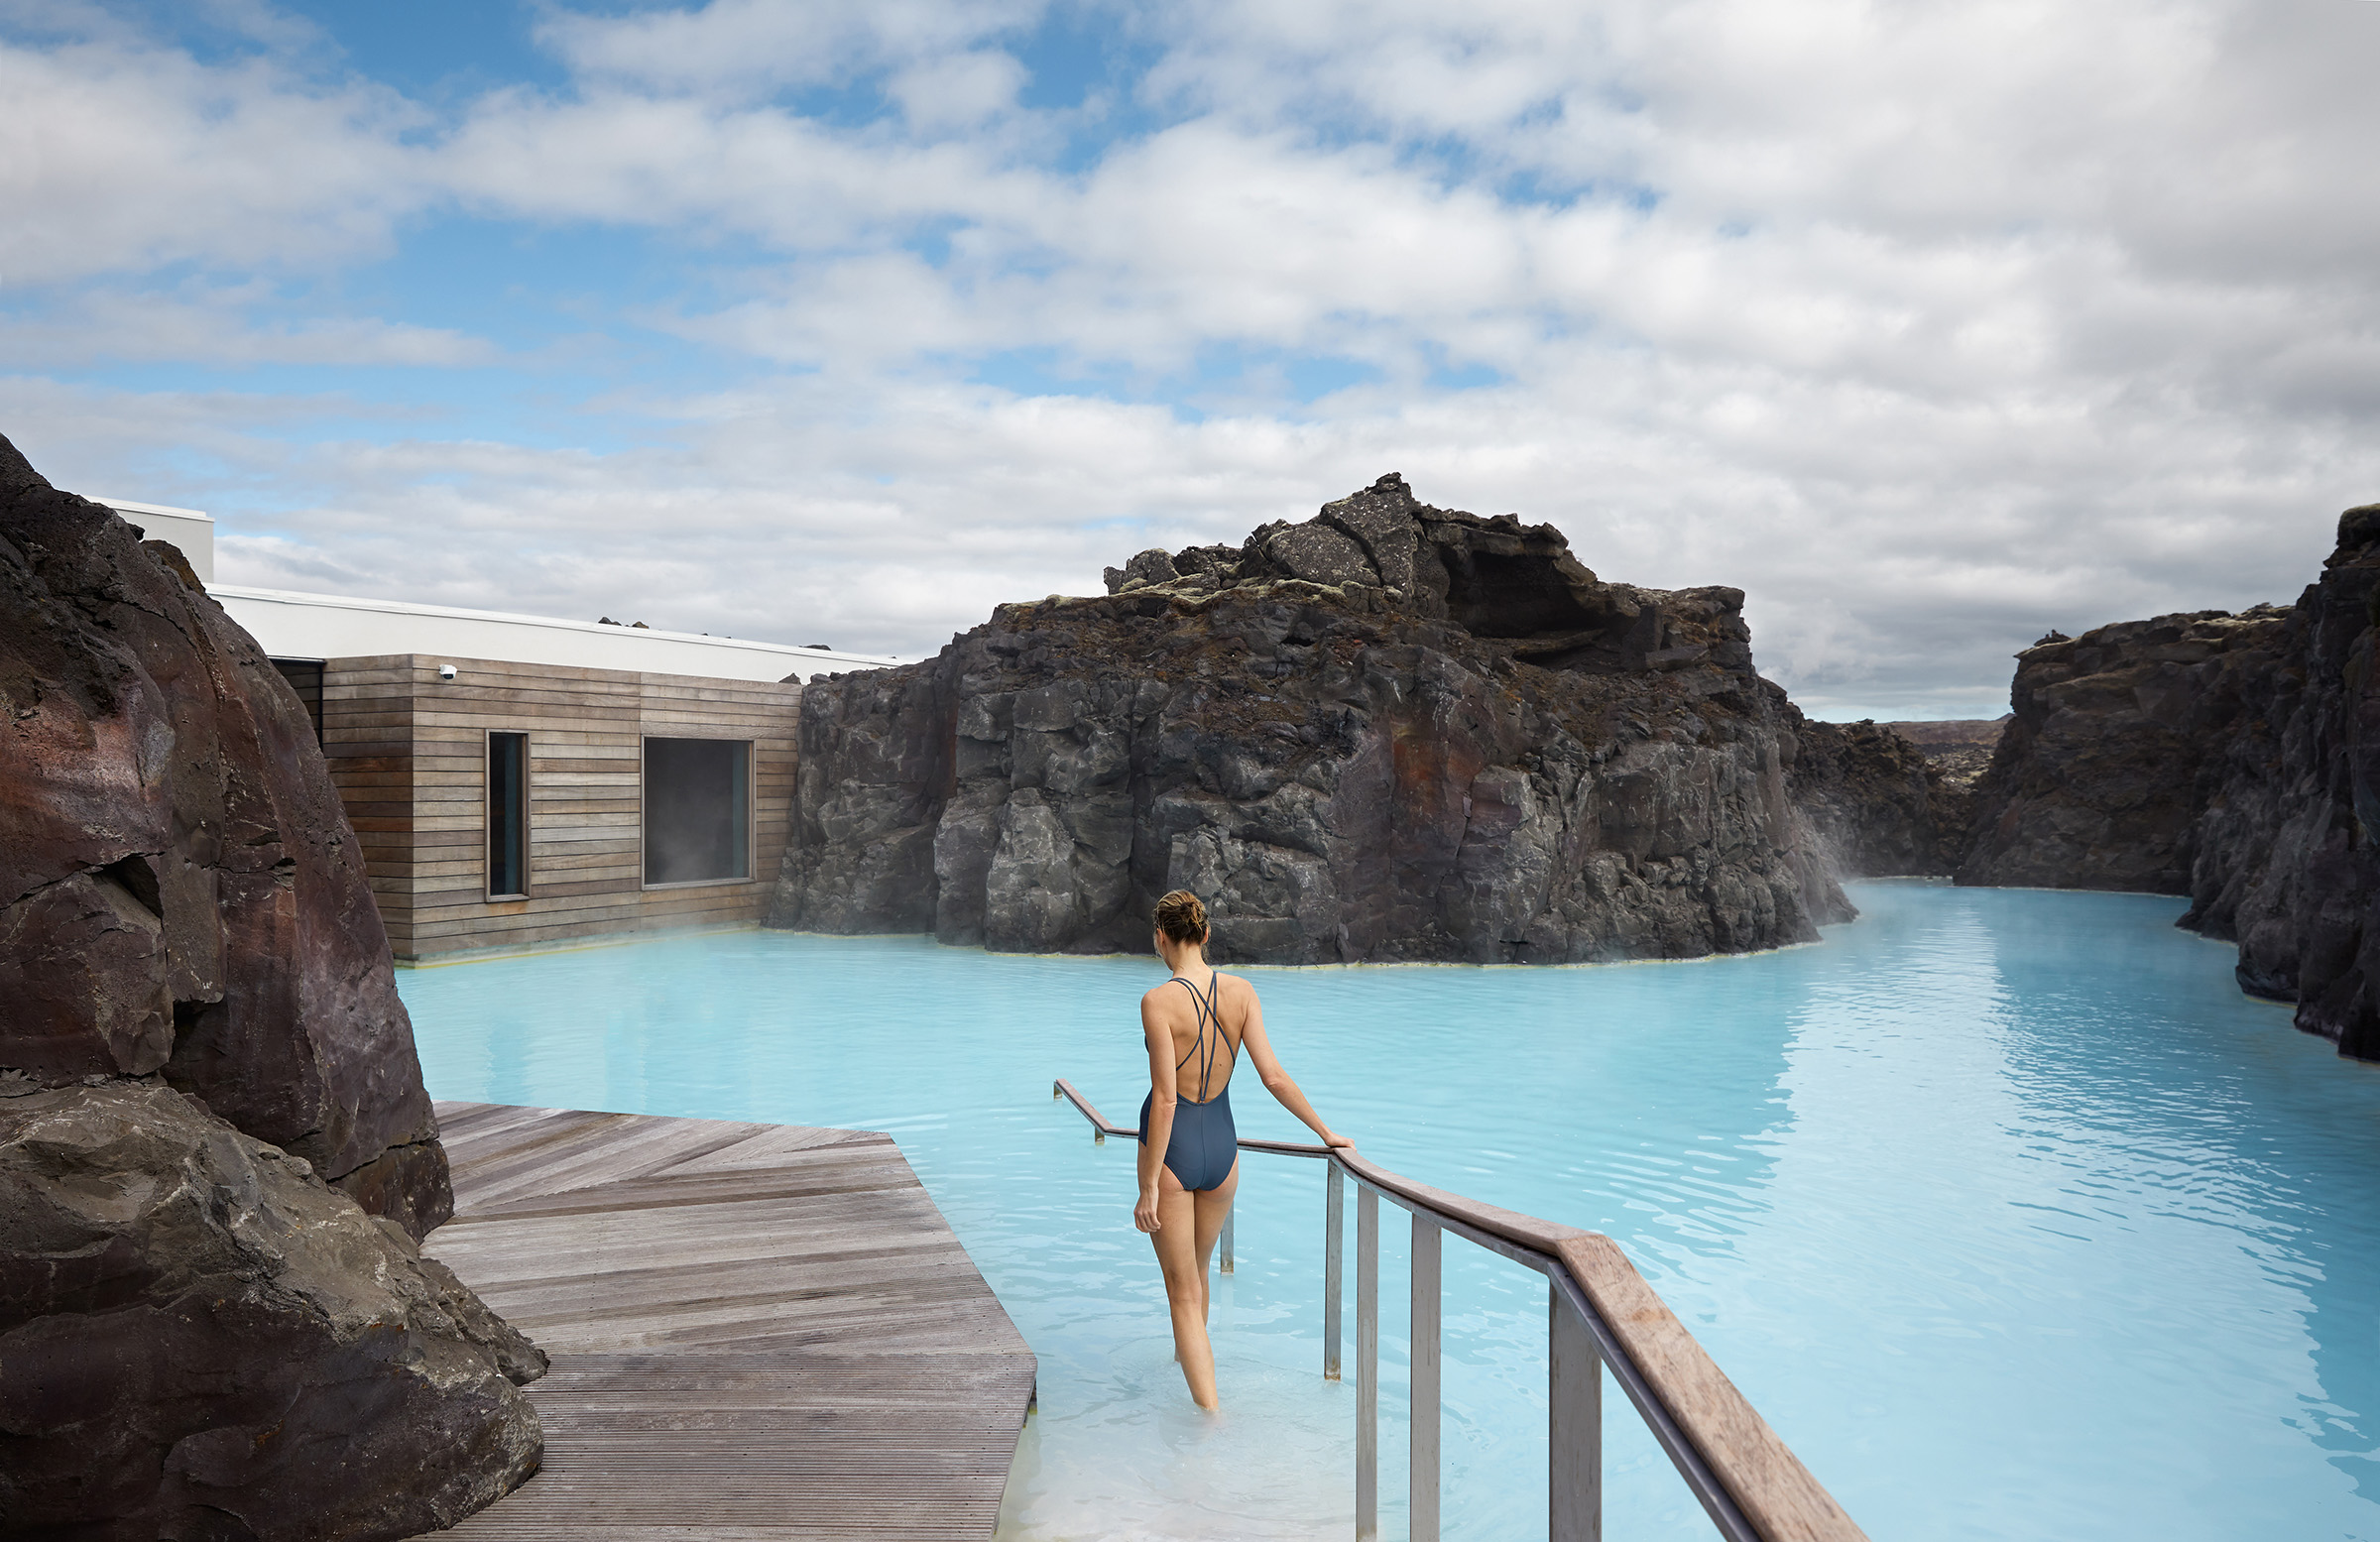 Make a Splash With the Most Stunning Hotel Pools in the World